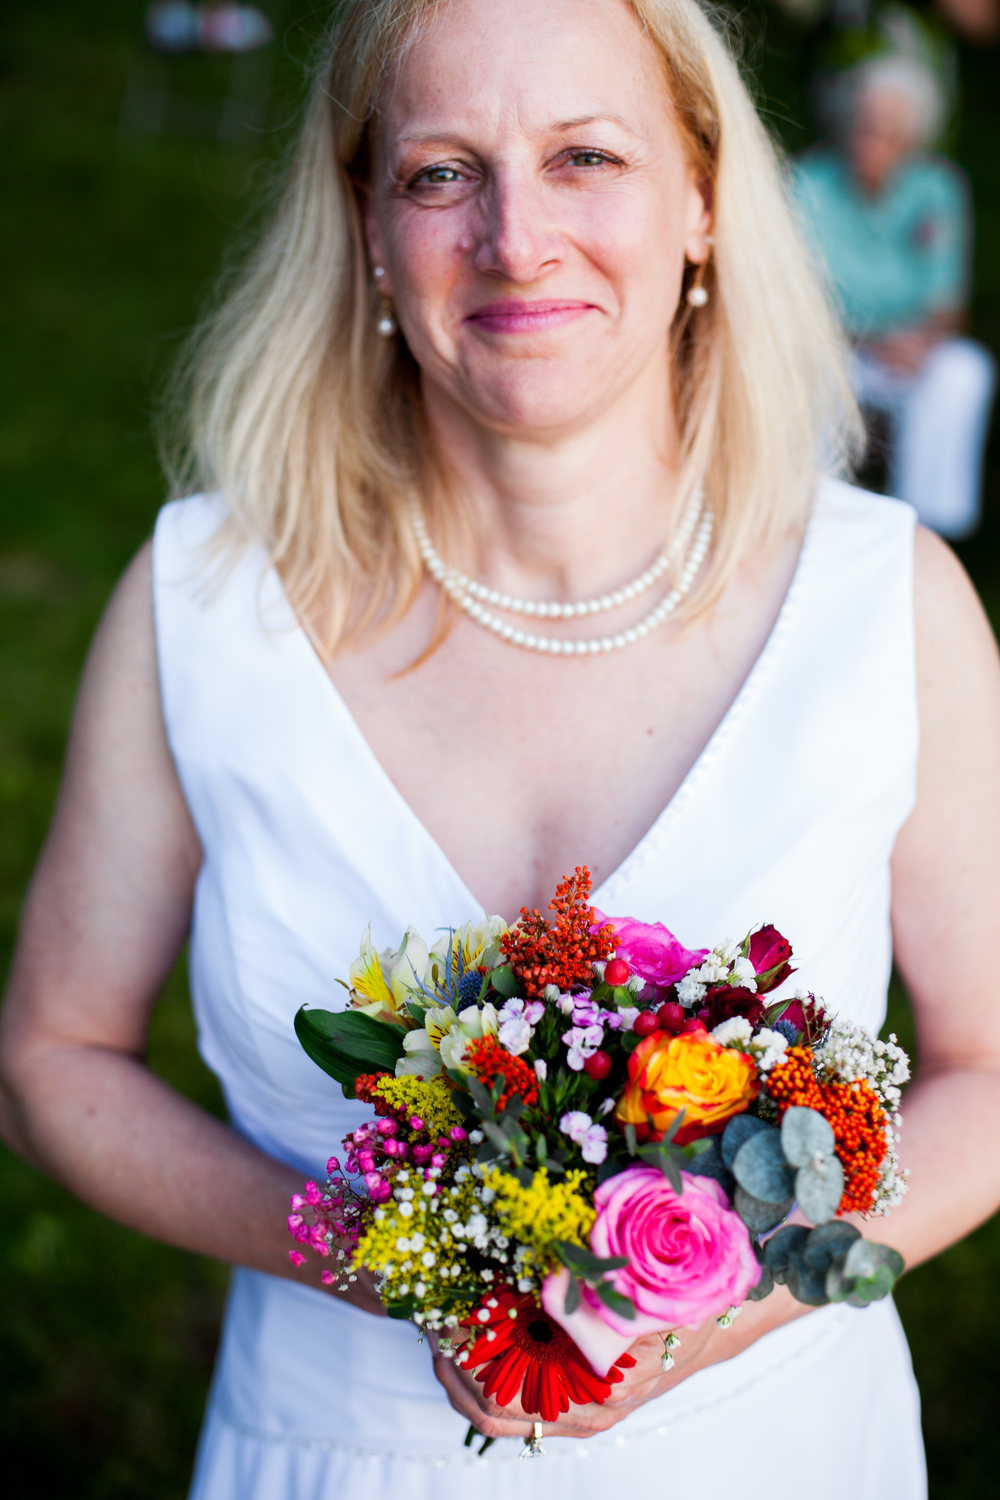 lisa-mikewedding-068-2.jpg